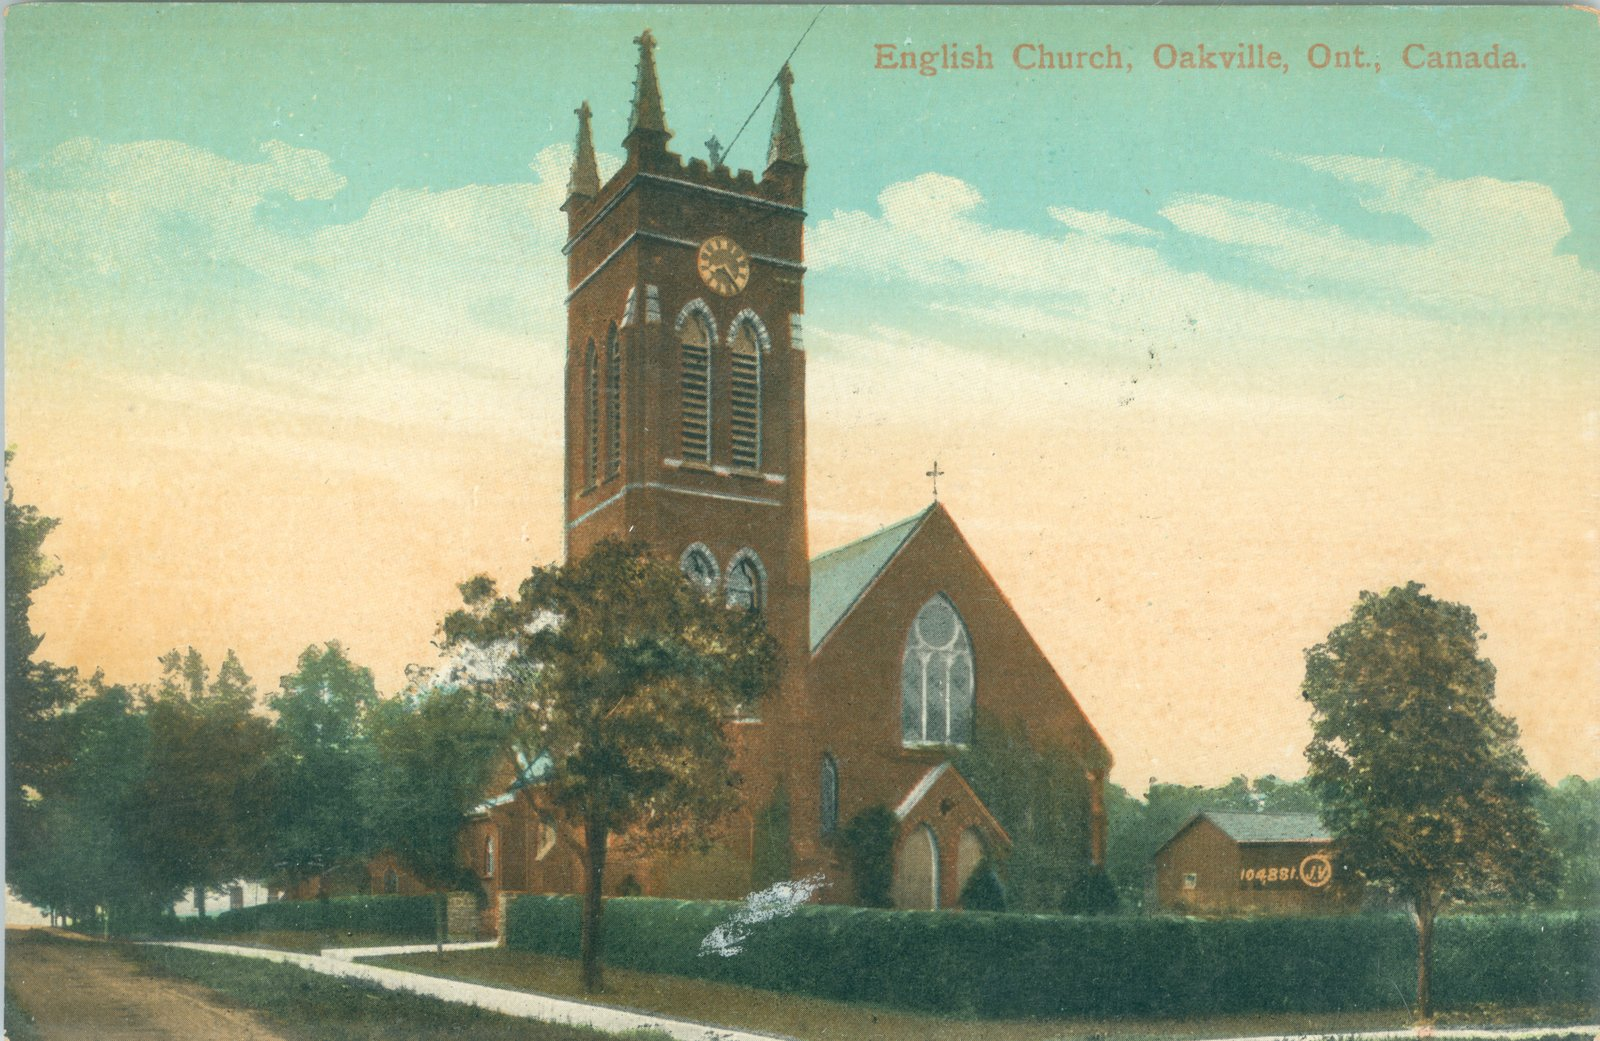 Oakville English Church Postcard